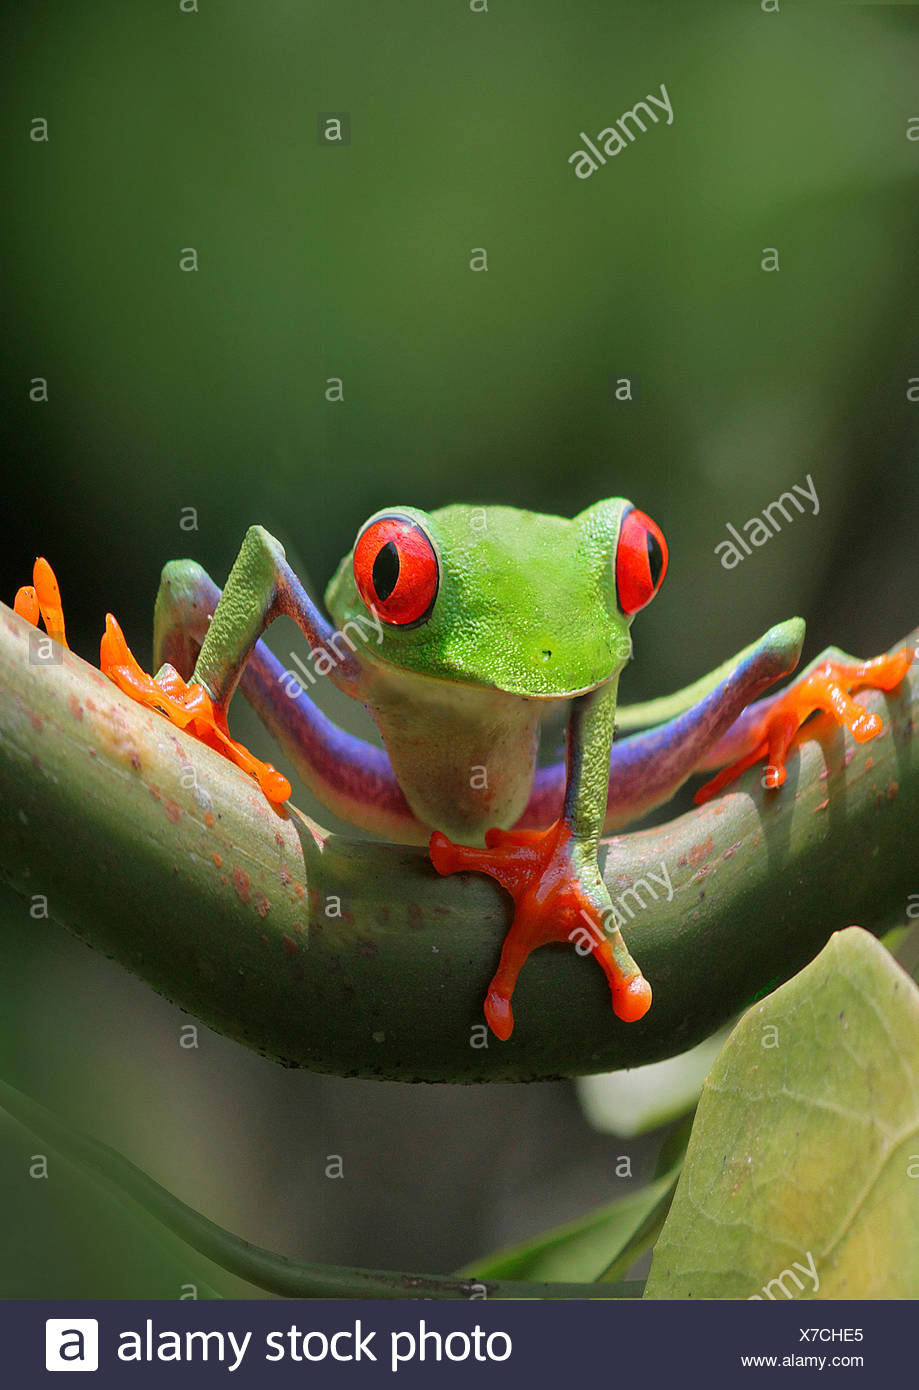 red-eyed treefrog, redeyed treefrog, redeye treefrog, red eye treefrog, red eyed frog (Agalychnis callidryas), on a branch - Stock Image